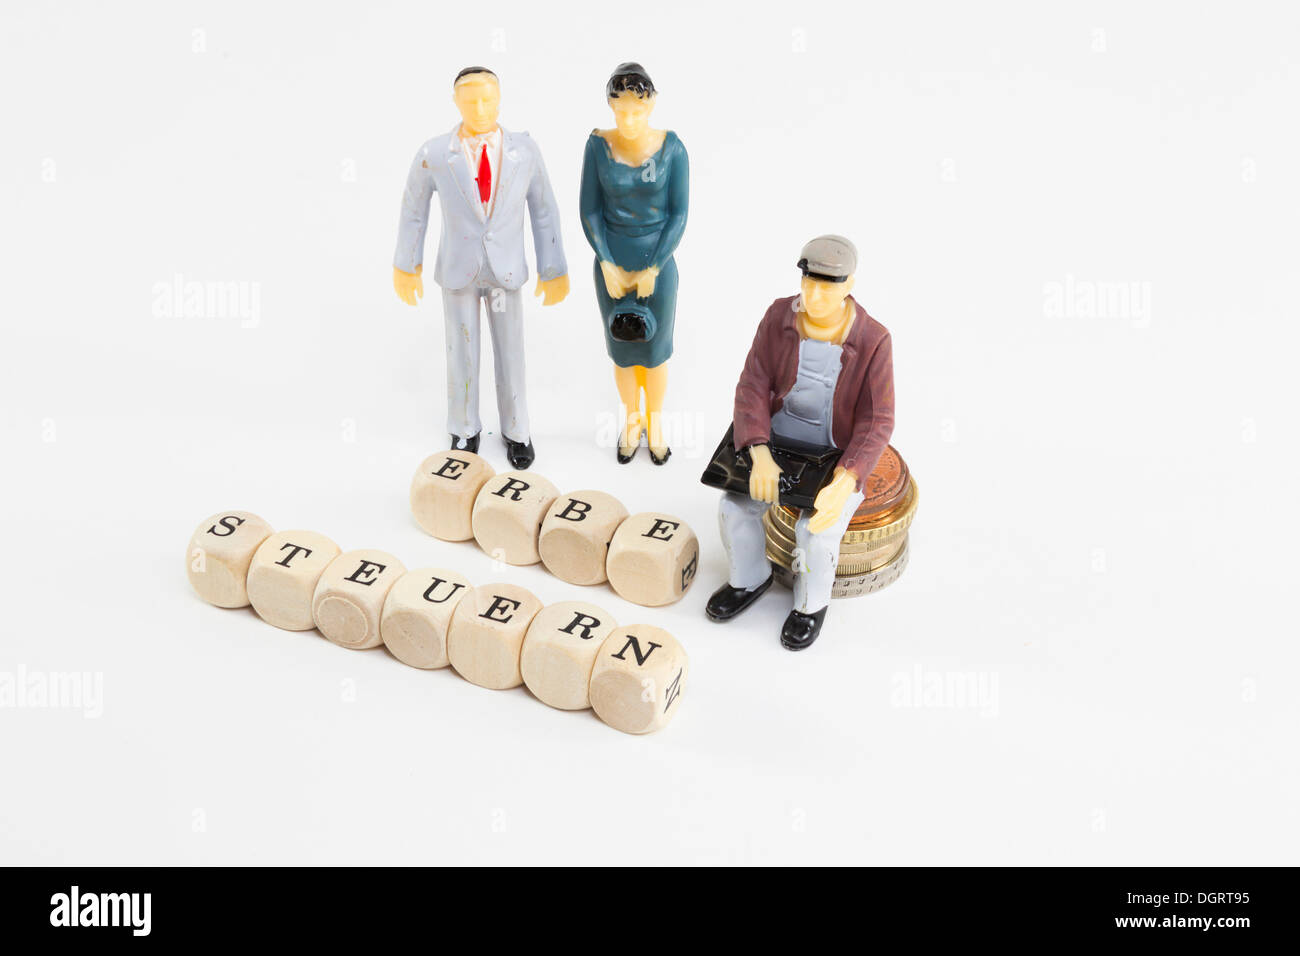 Miniature figures, letter cubes forming the words 'Erbe' and 'Steuern', German for 'inheritance' and 'taxes', symbolic image for - Stock Image